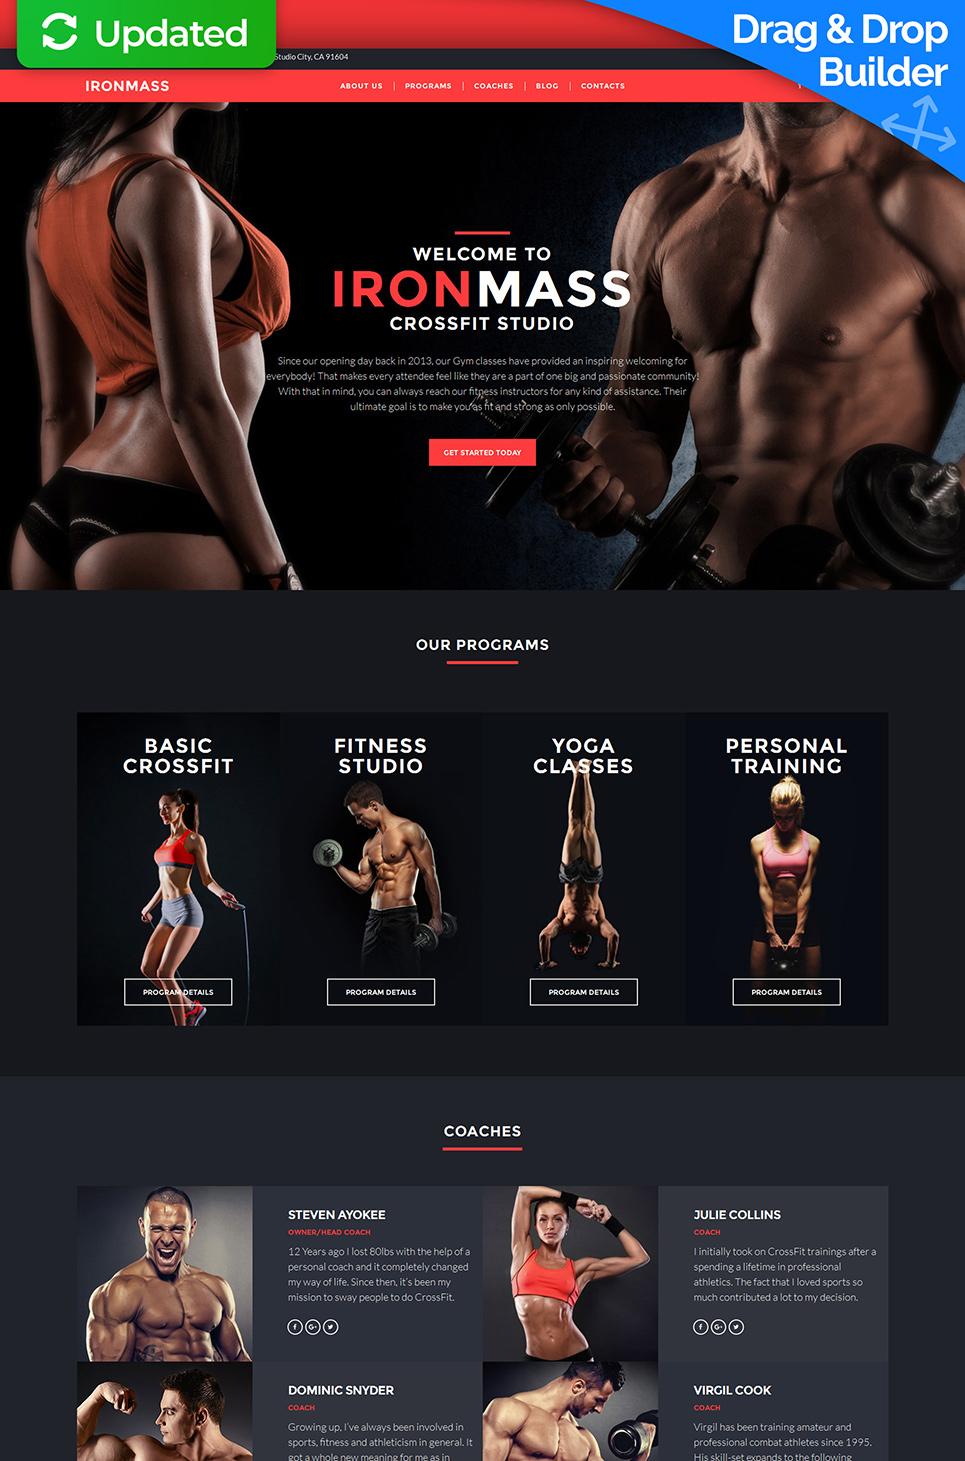 Red and black design for fitness club site